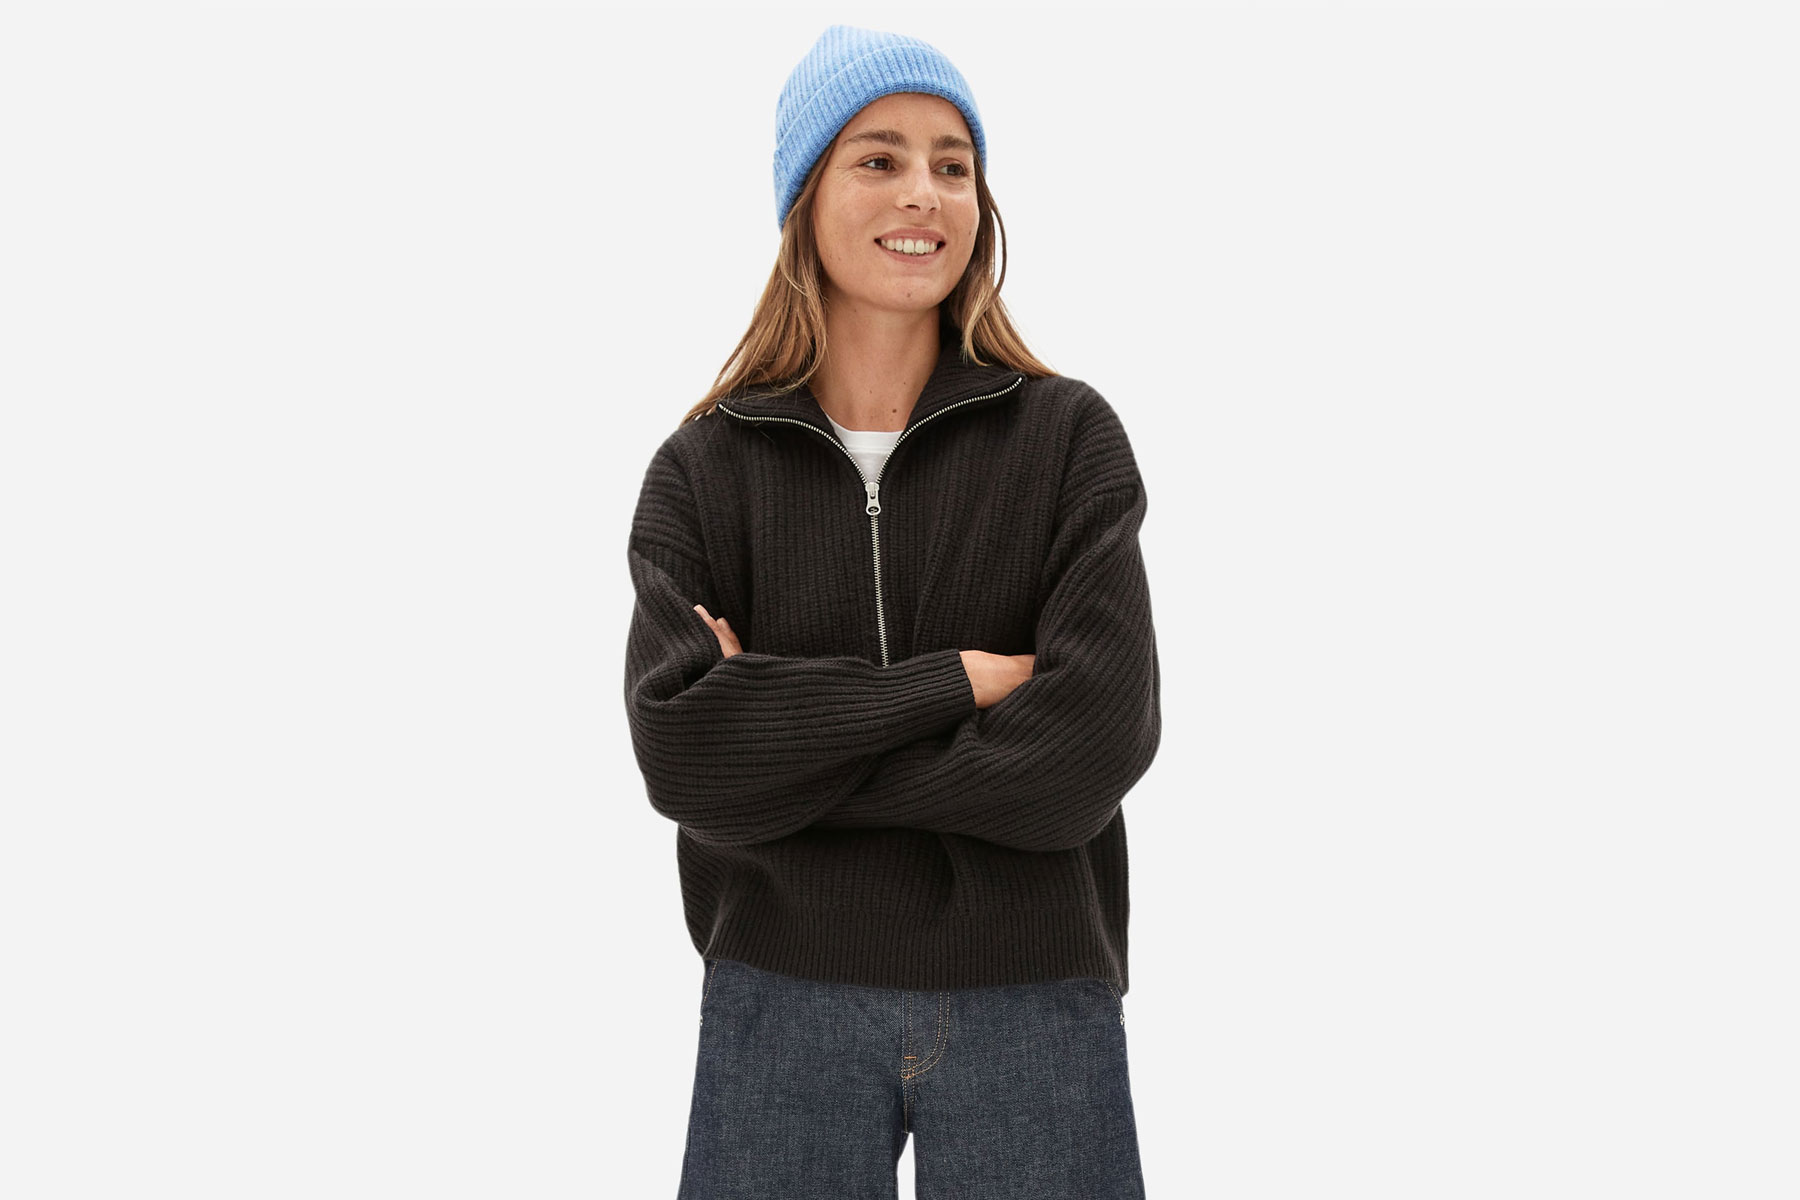 Woman wearing light blue knit beanie